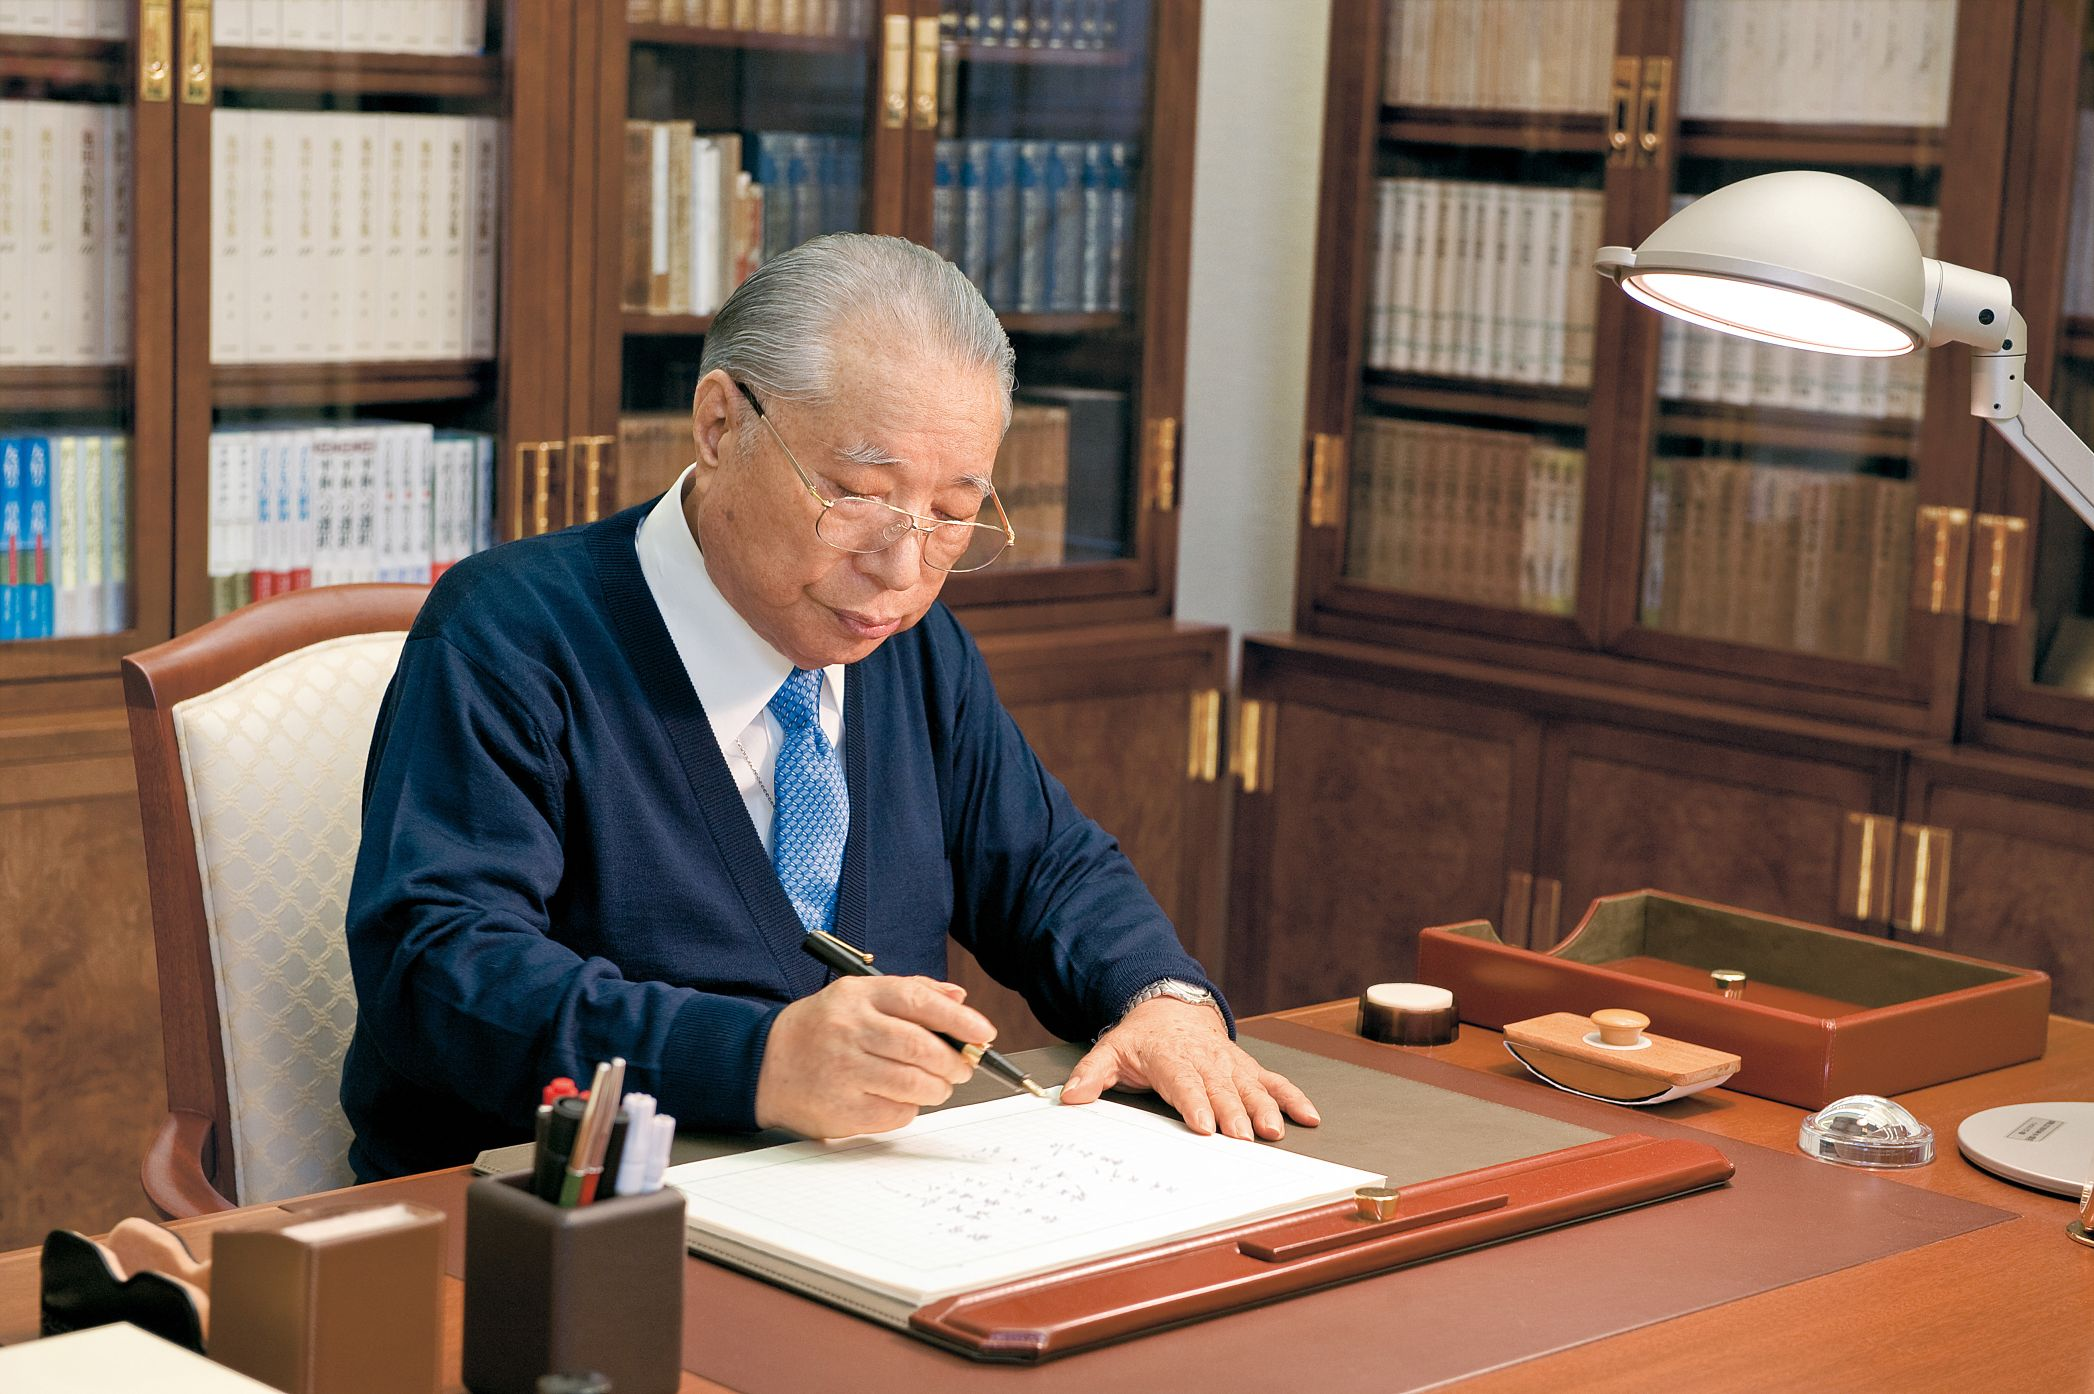 Buddhist leader Ikeda urges human rights focus as key to